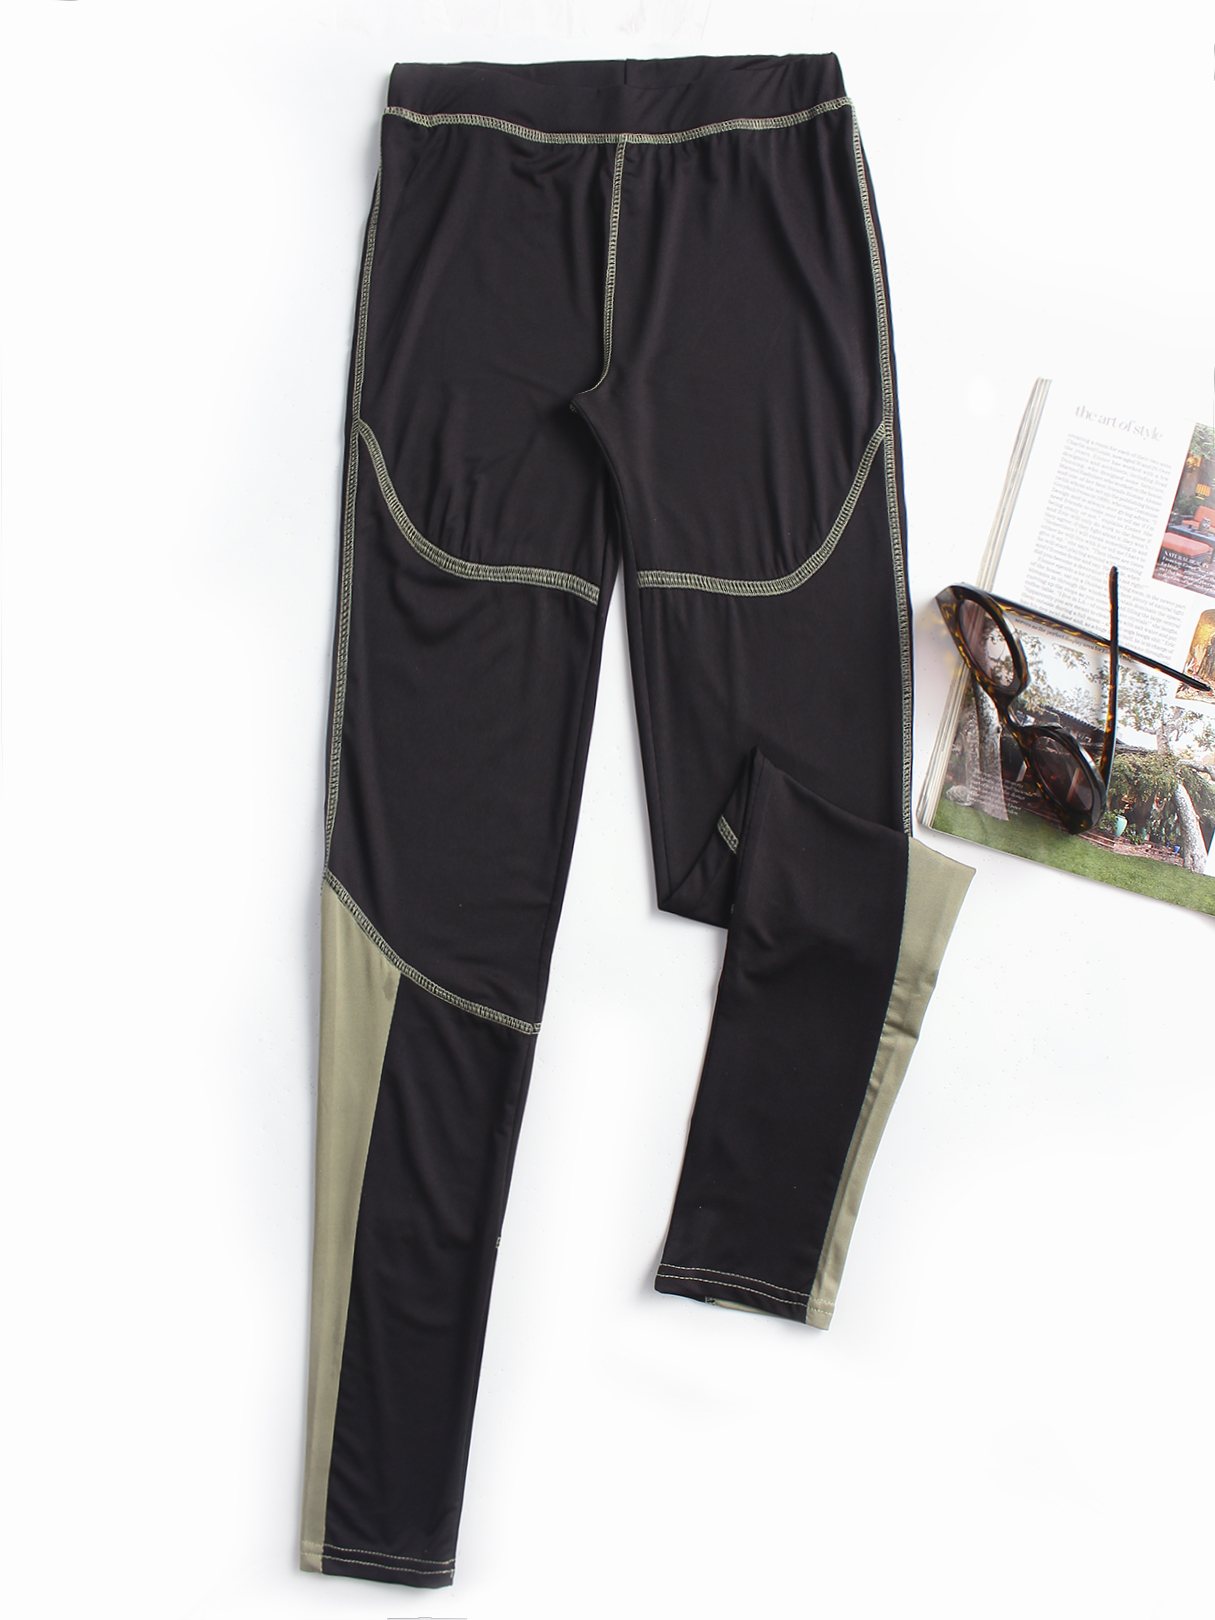 Black Active Contrast Color Quick Drying Gym Leggings active yarn net stitching design gym leggings in black